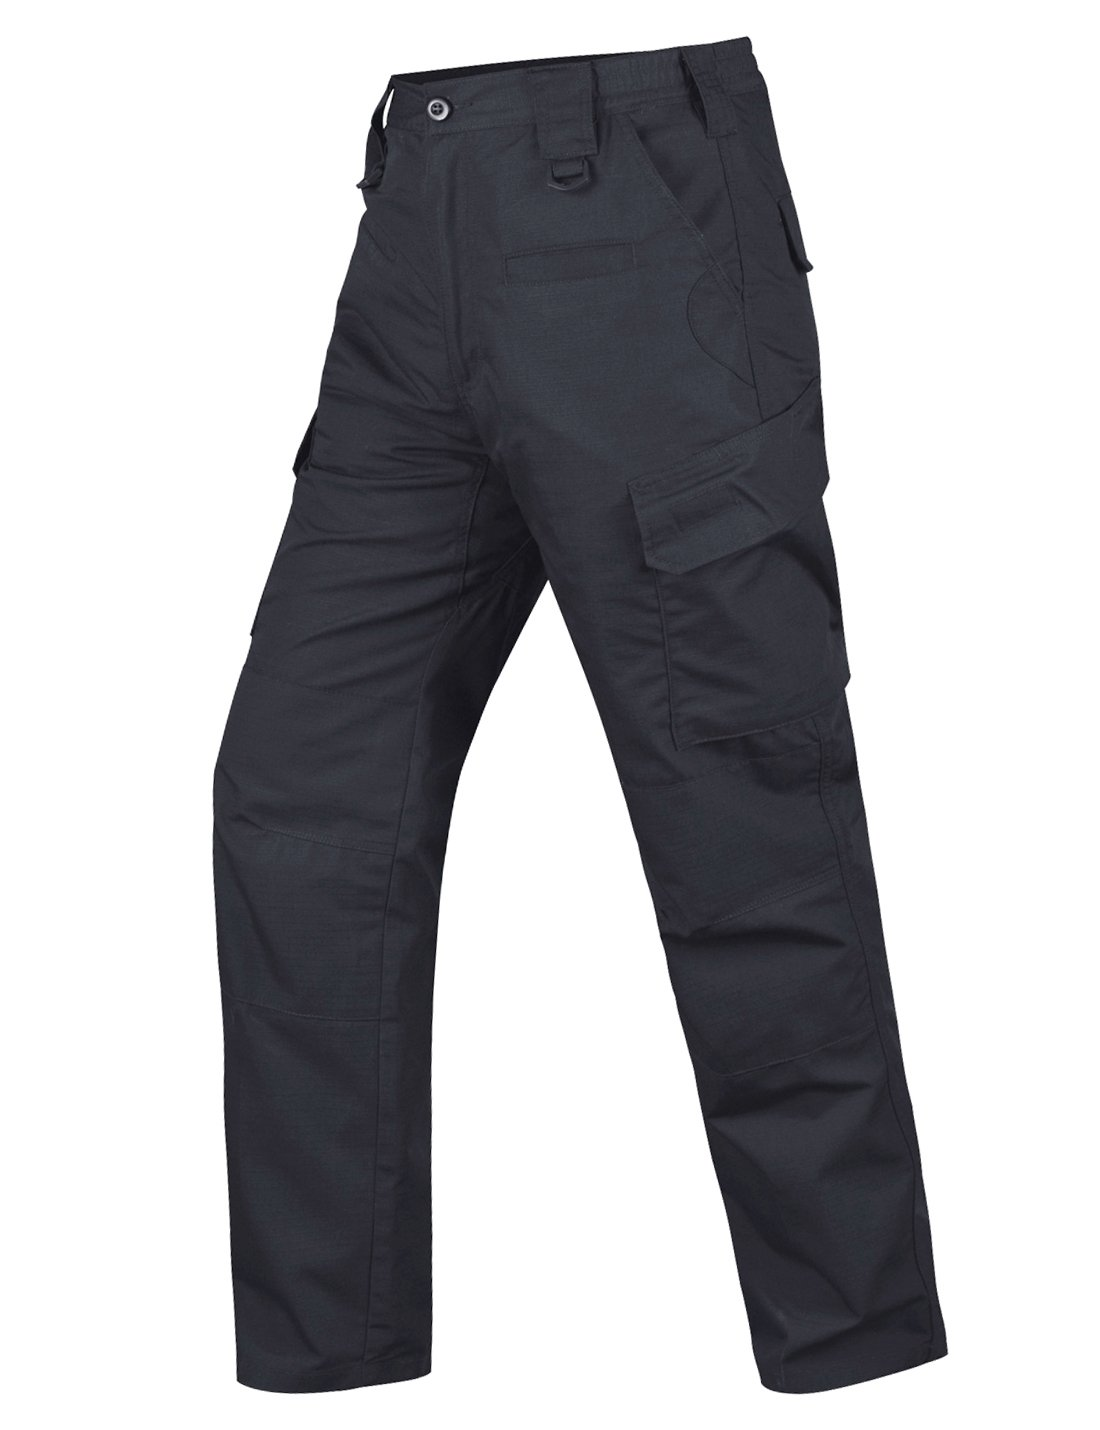 HARD LAND Men's Tactical Pants Waterproof Ripstop Cargo Work Pants with Elastic Waist for Hiking Hunting Fishing Size44W×32L Charcoal Grey by HARD LAND (Image #1)